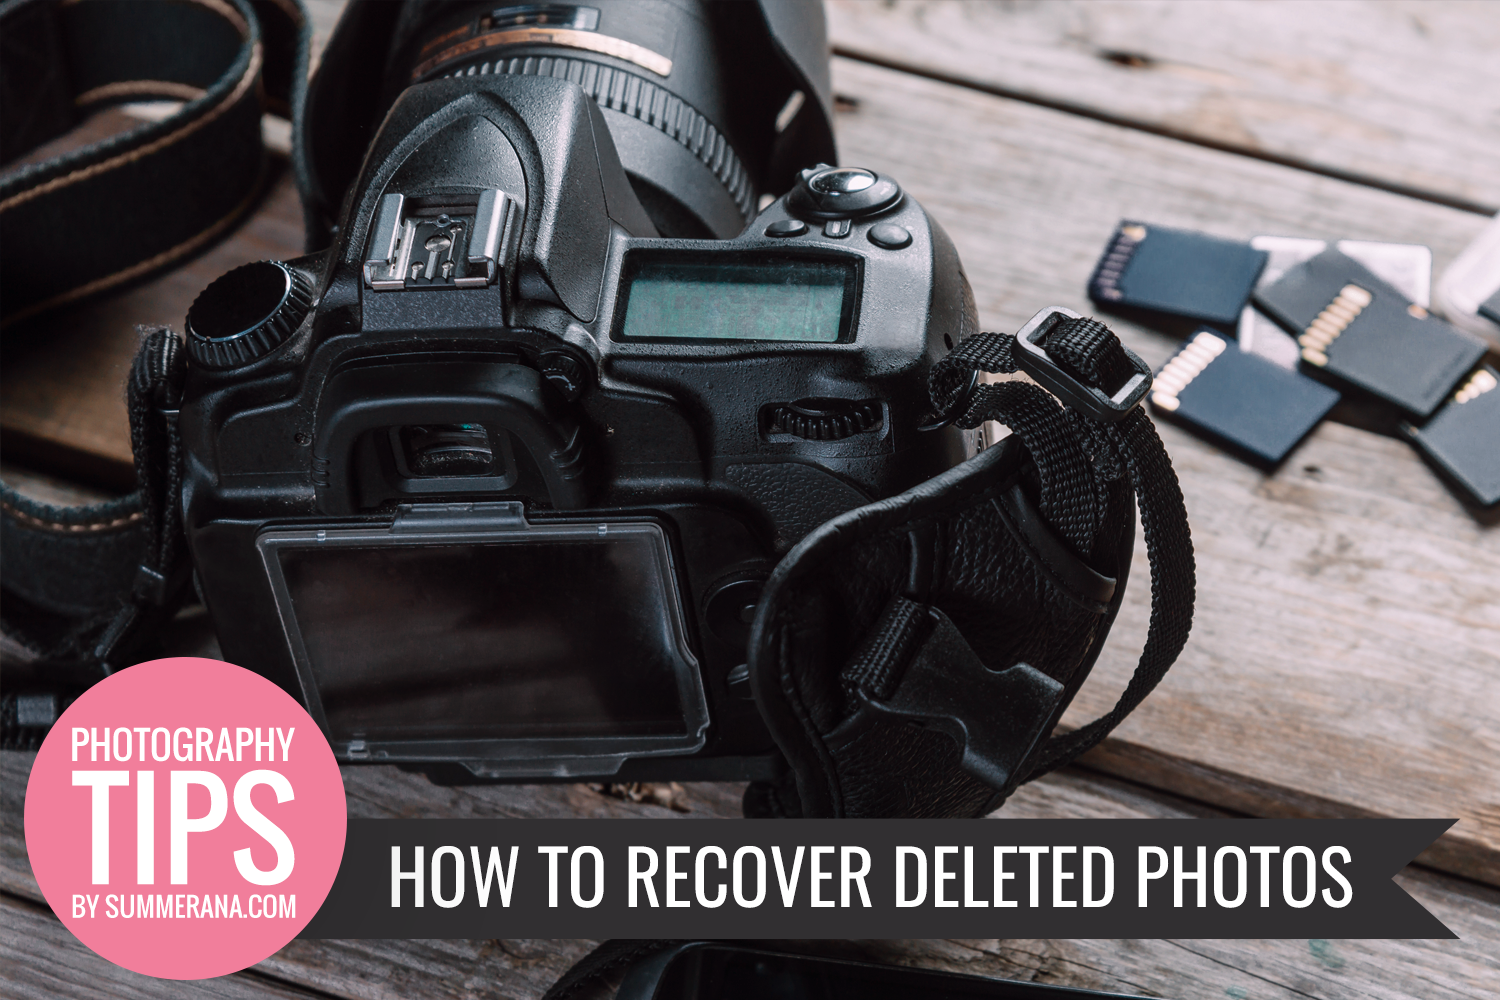 How-to-Recover-Deleted-Photos-from-your-memory-card-and-computer-and-photoshop